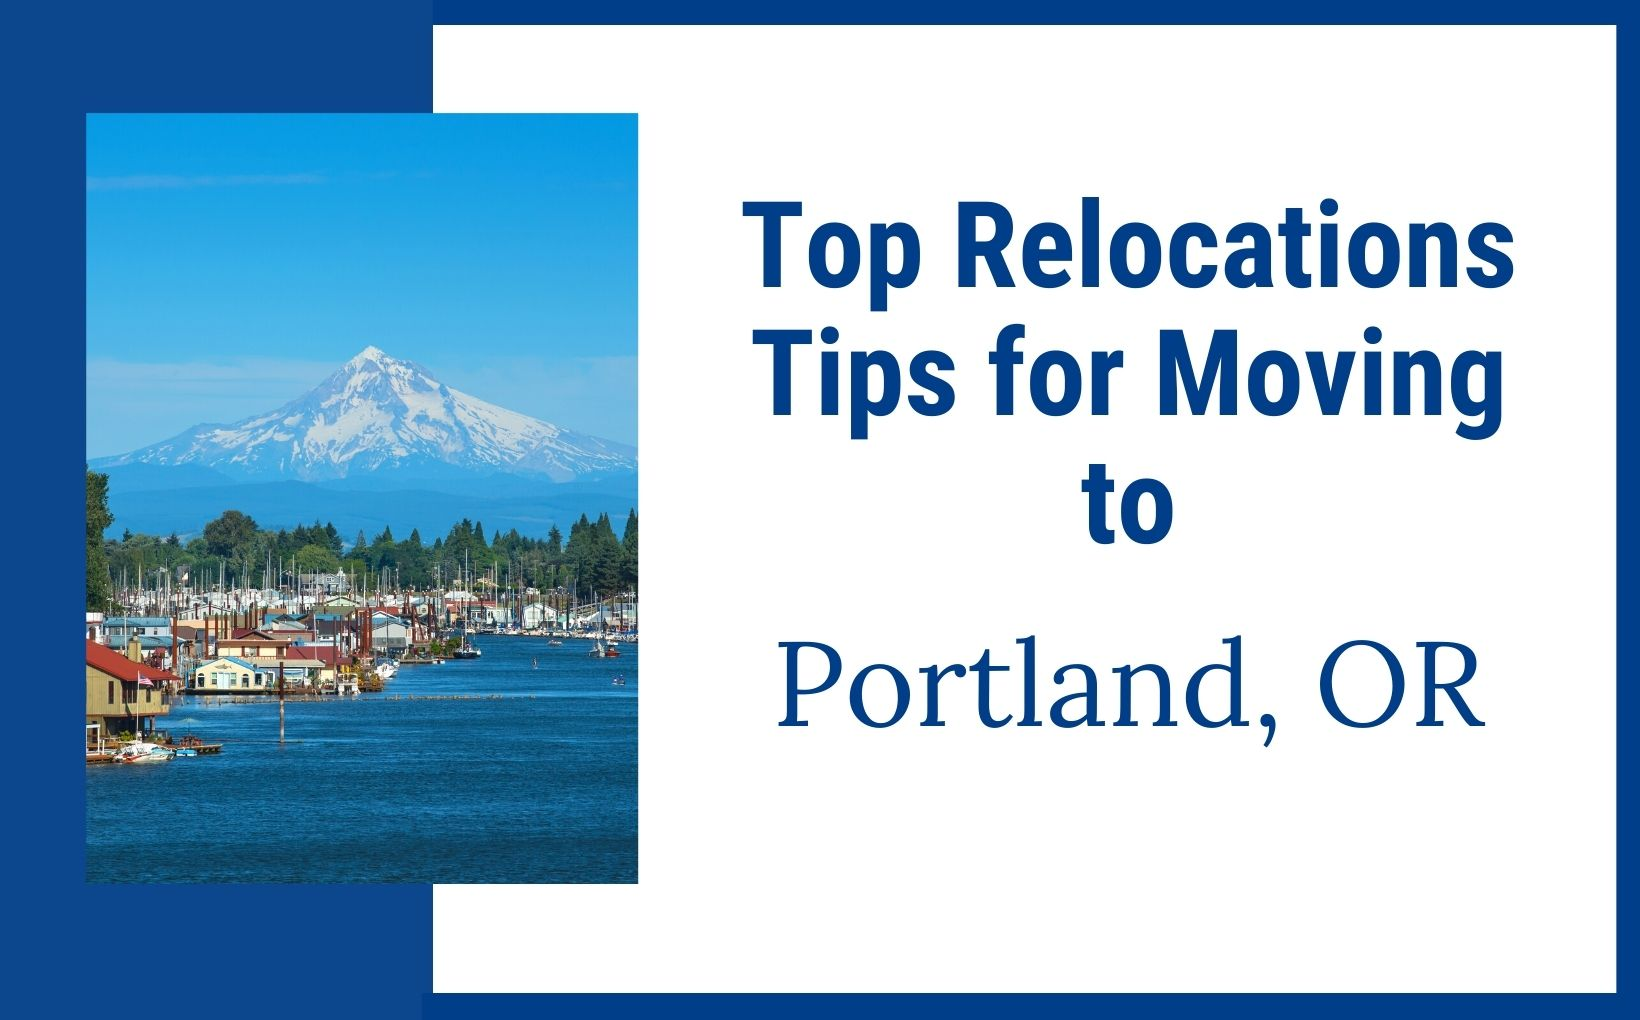 Top 5 Relocation Tips for Moving to Portland Oregon feature image